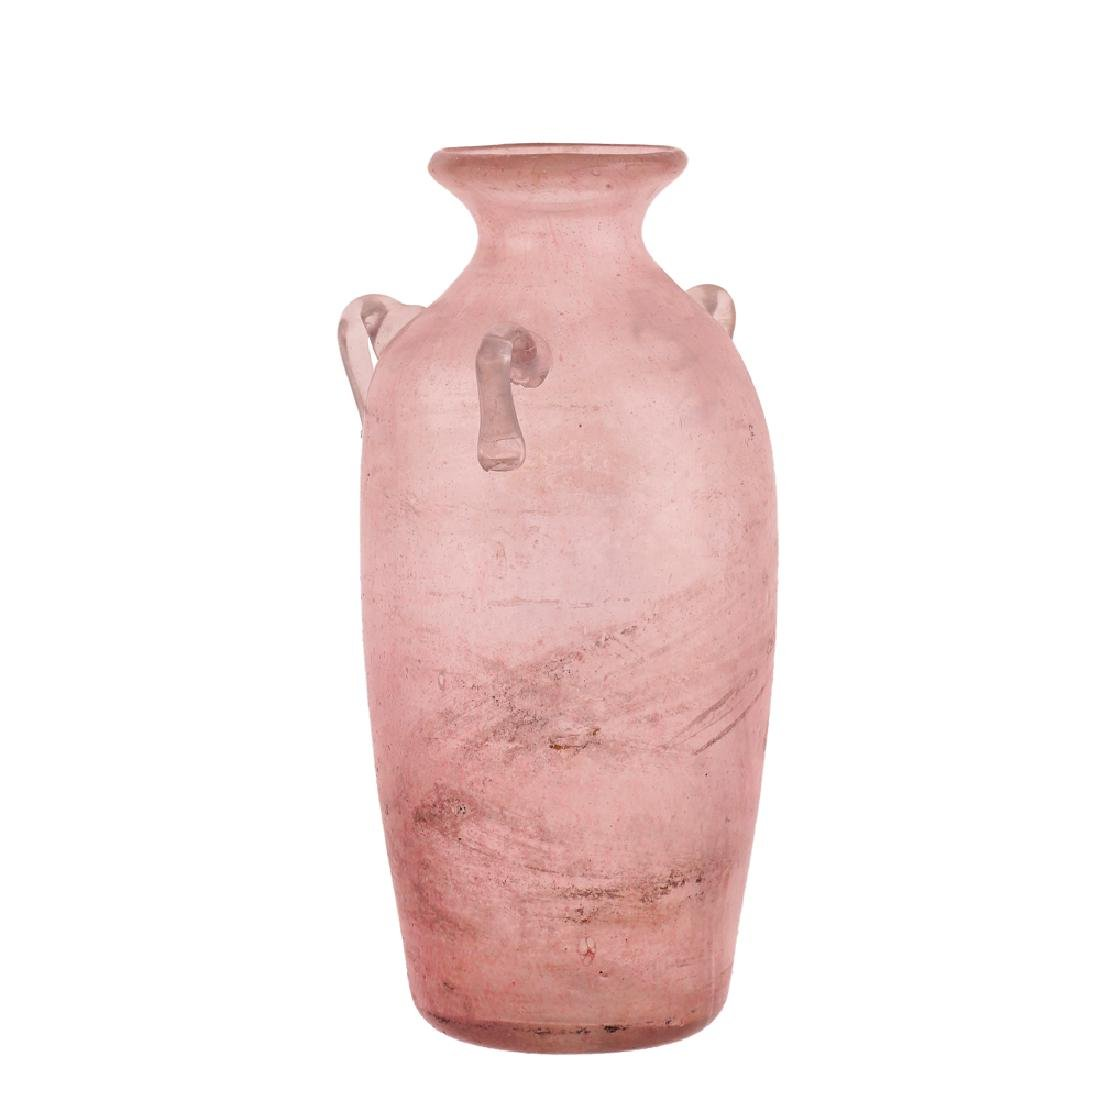 Pink blown glass vase Italy 20th century h. 27 cm.